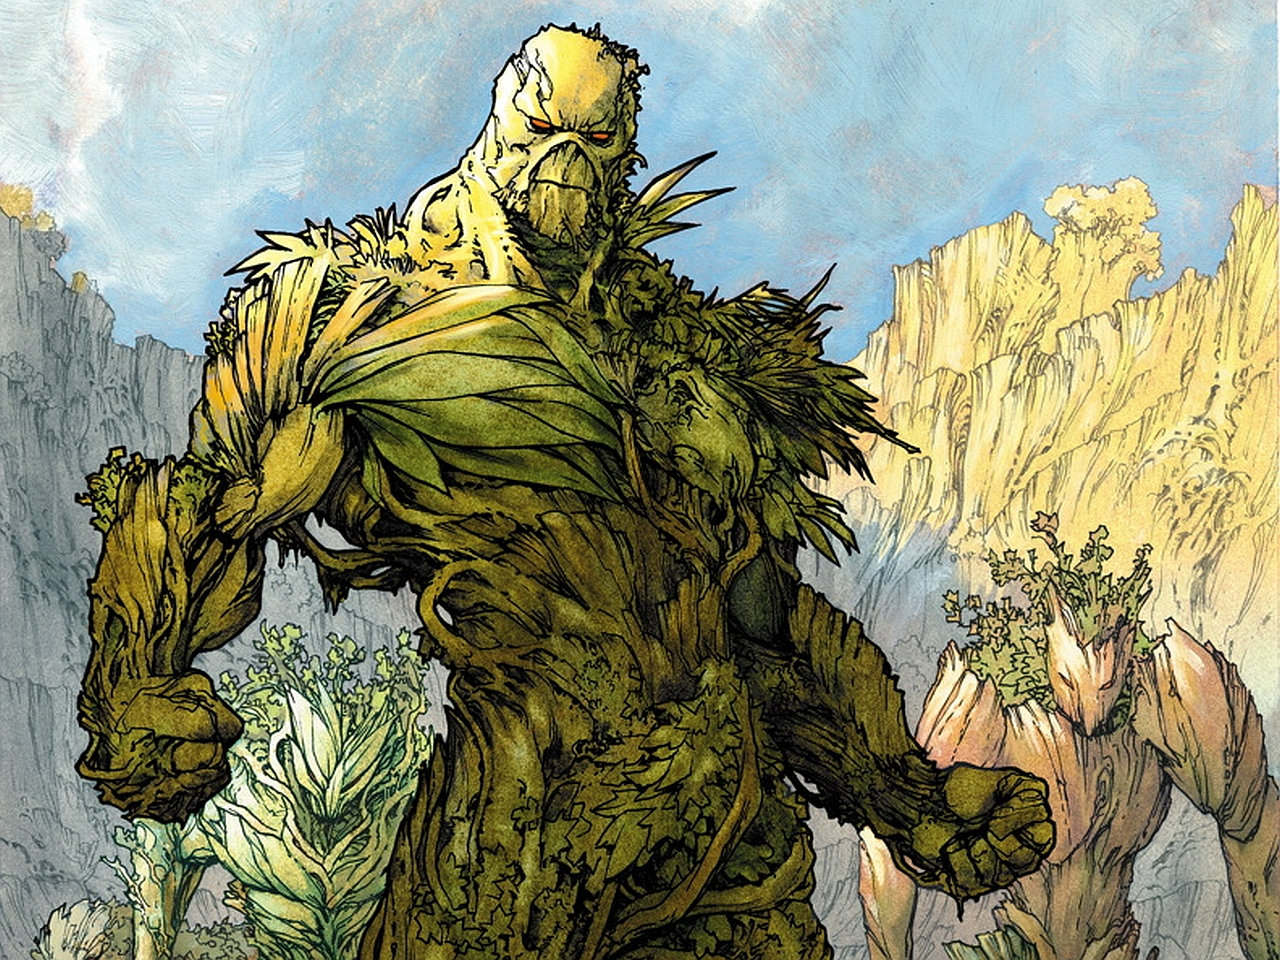 Swamp Thing Computer Wallpapers Desktop Backgrounds 1280x960 ID 1280x960